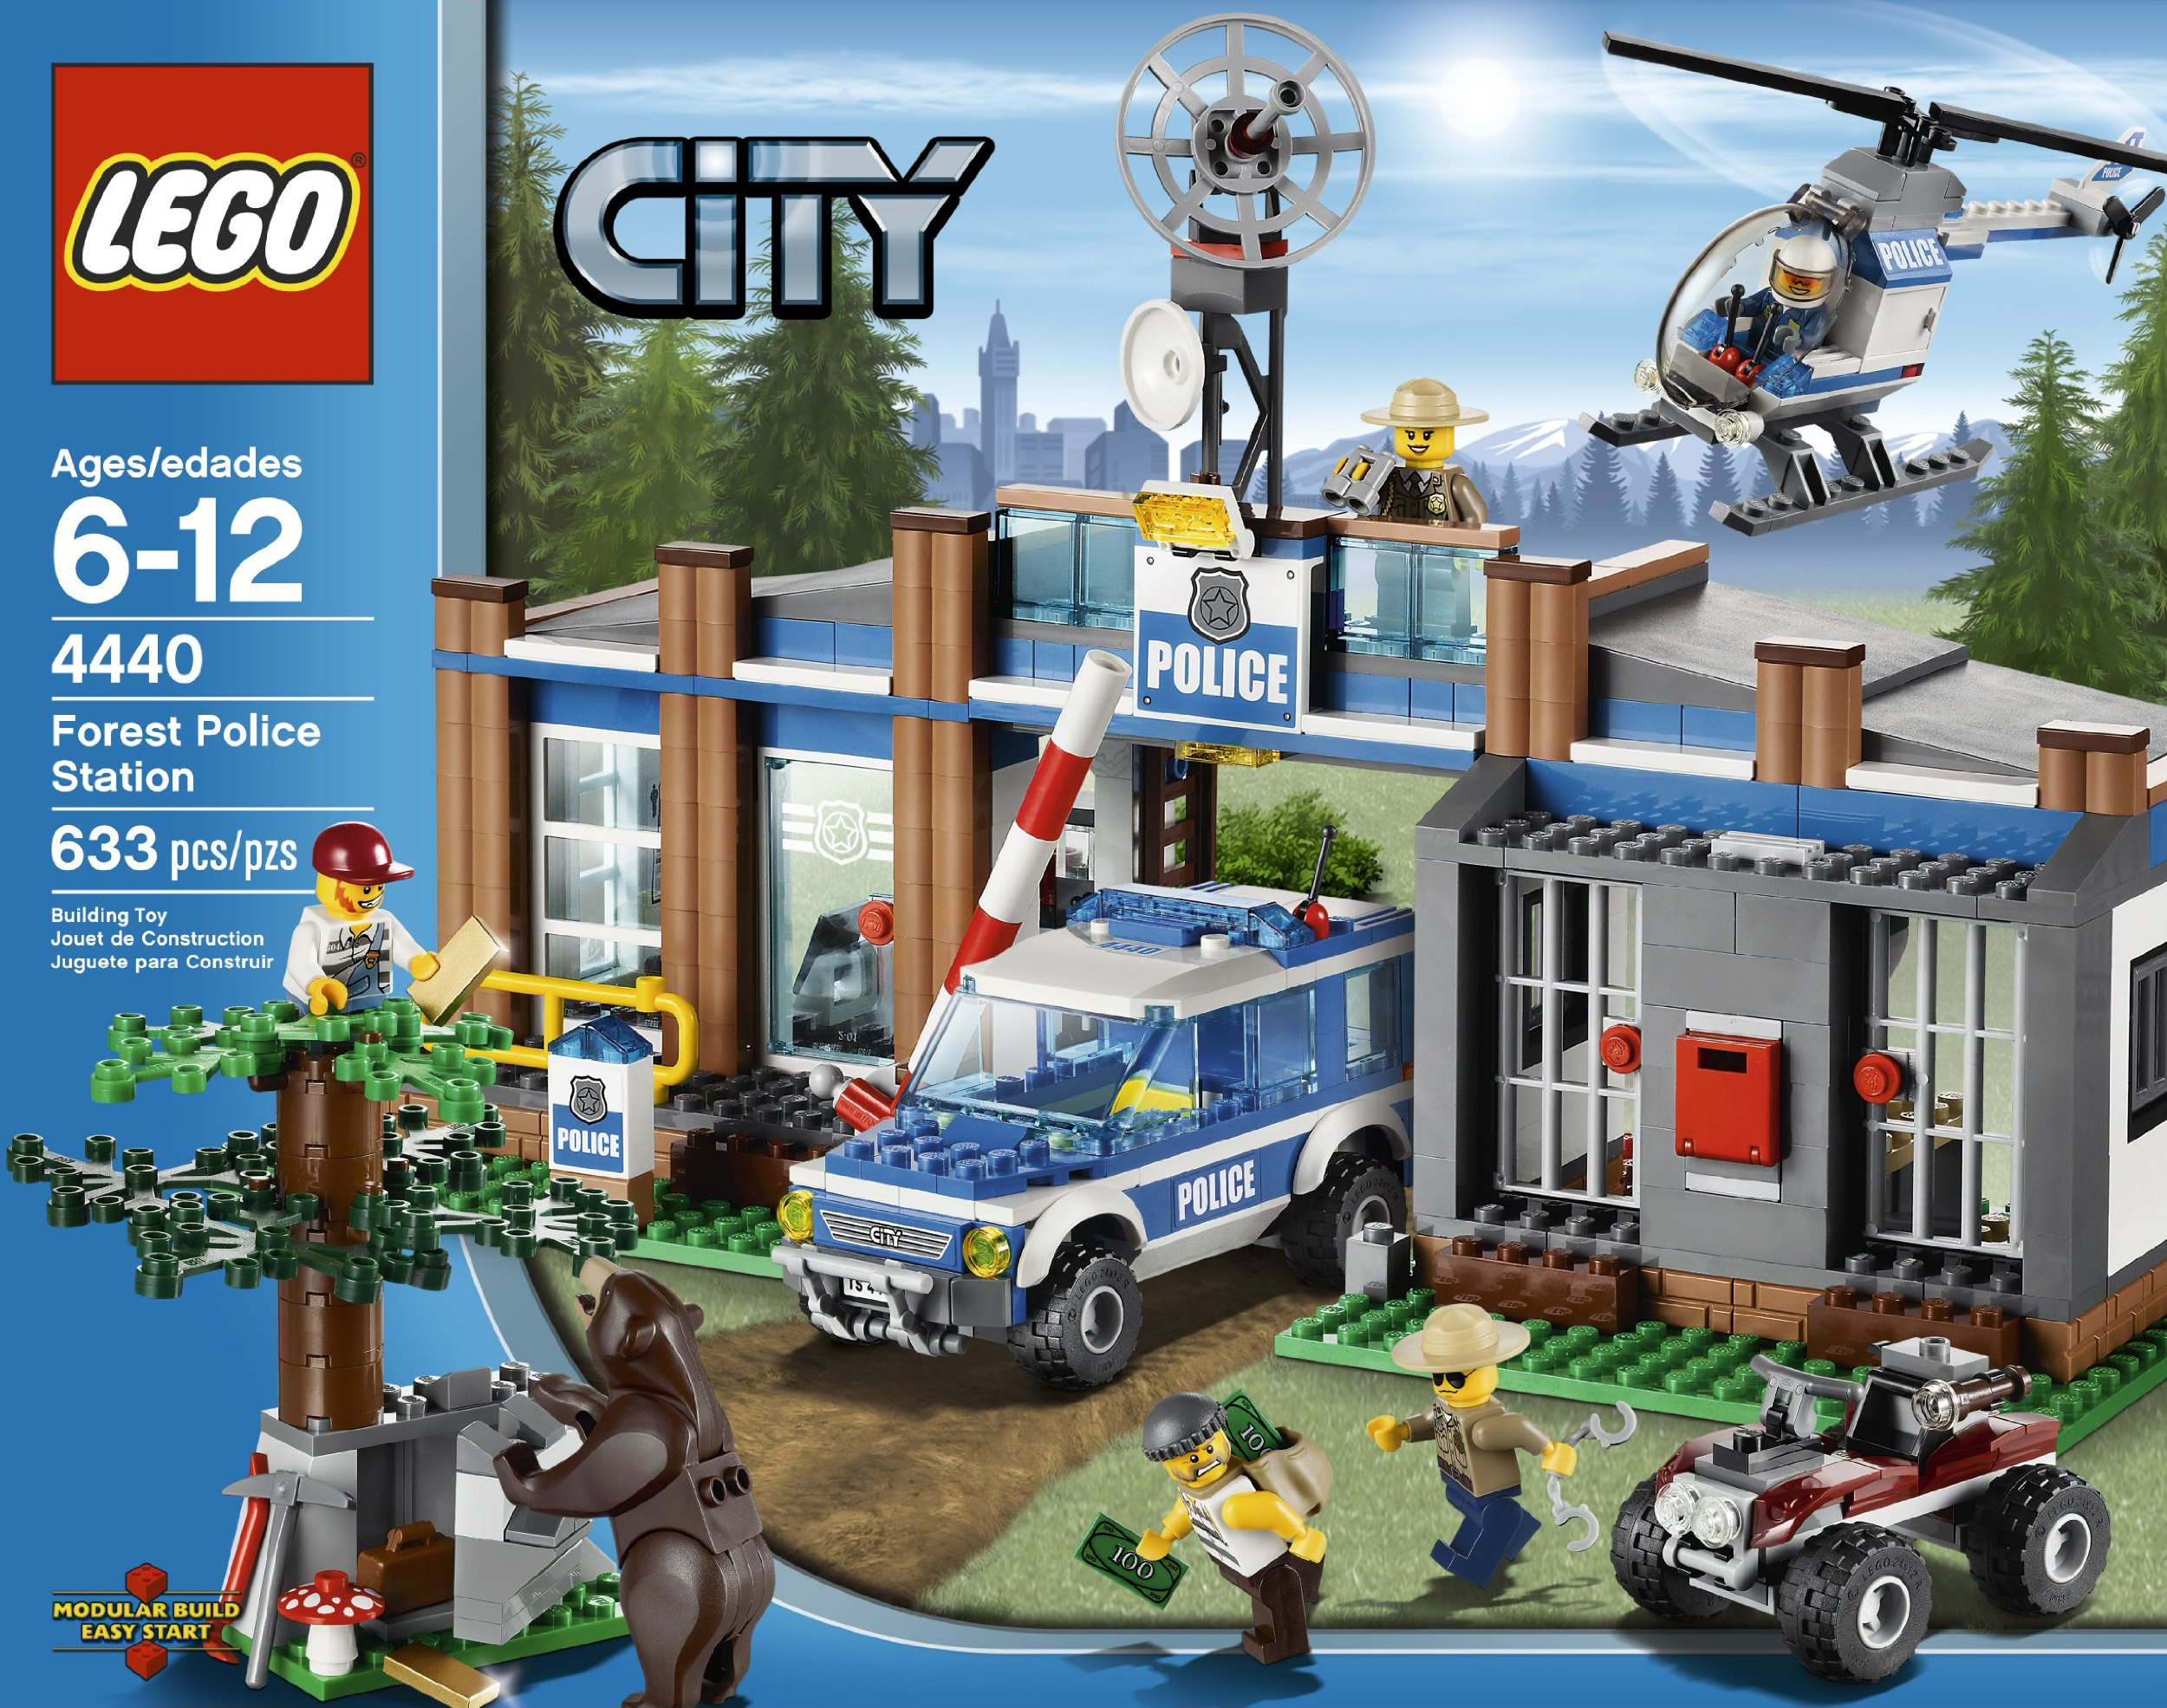 2012 lego city sets bring hillbillies bears forest fires park rangers news the brothers - Lego city police camion ...